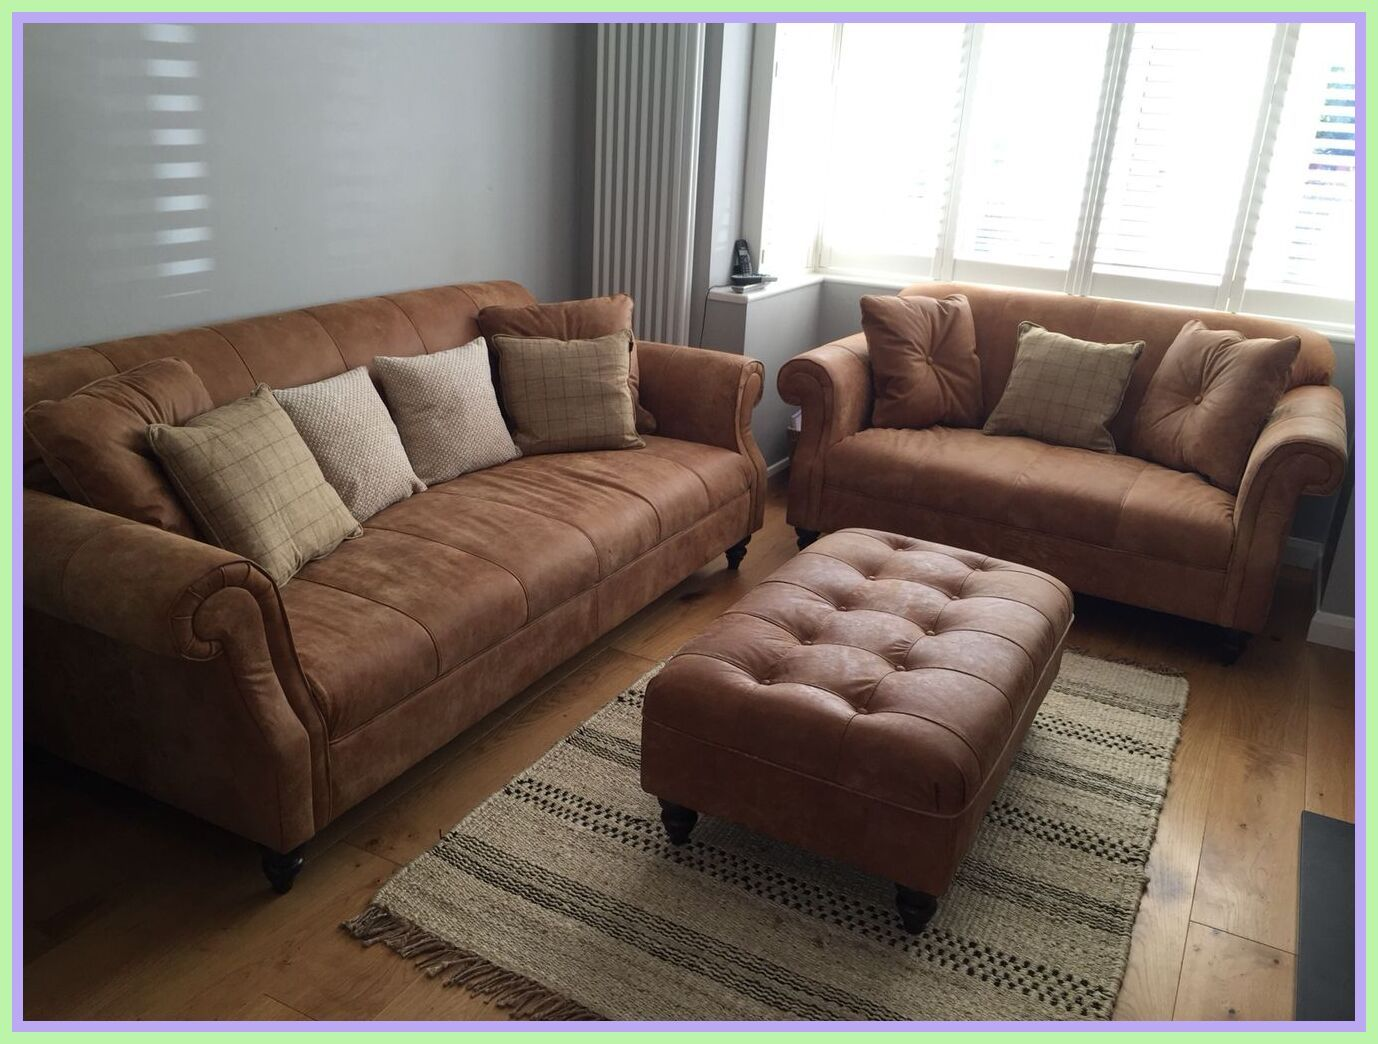 125 Reference Of Brown Sofa Grey Floor In 2020 Tan Leather S